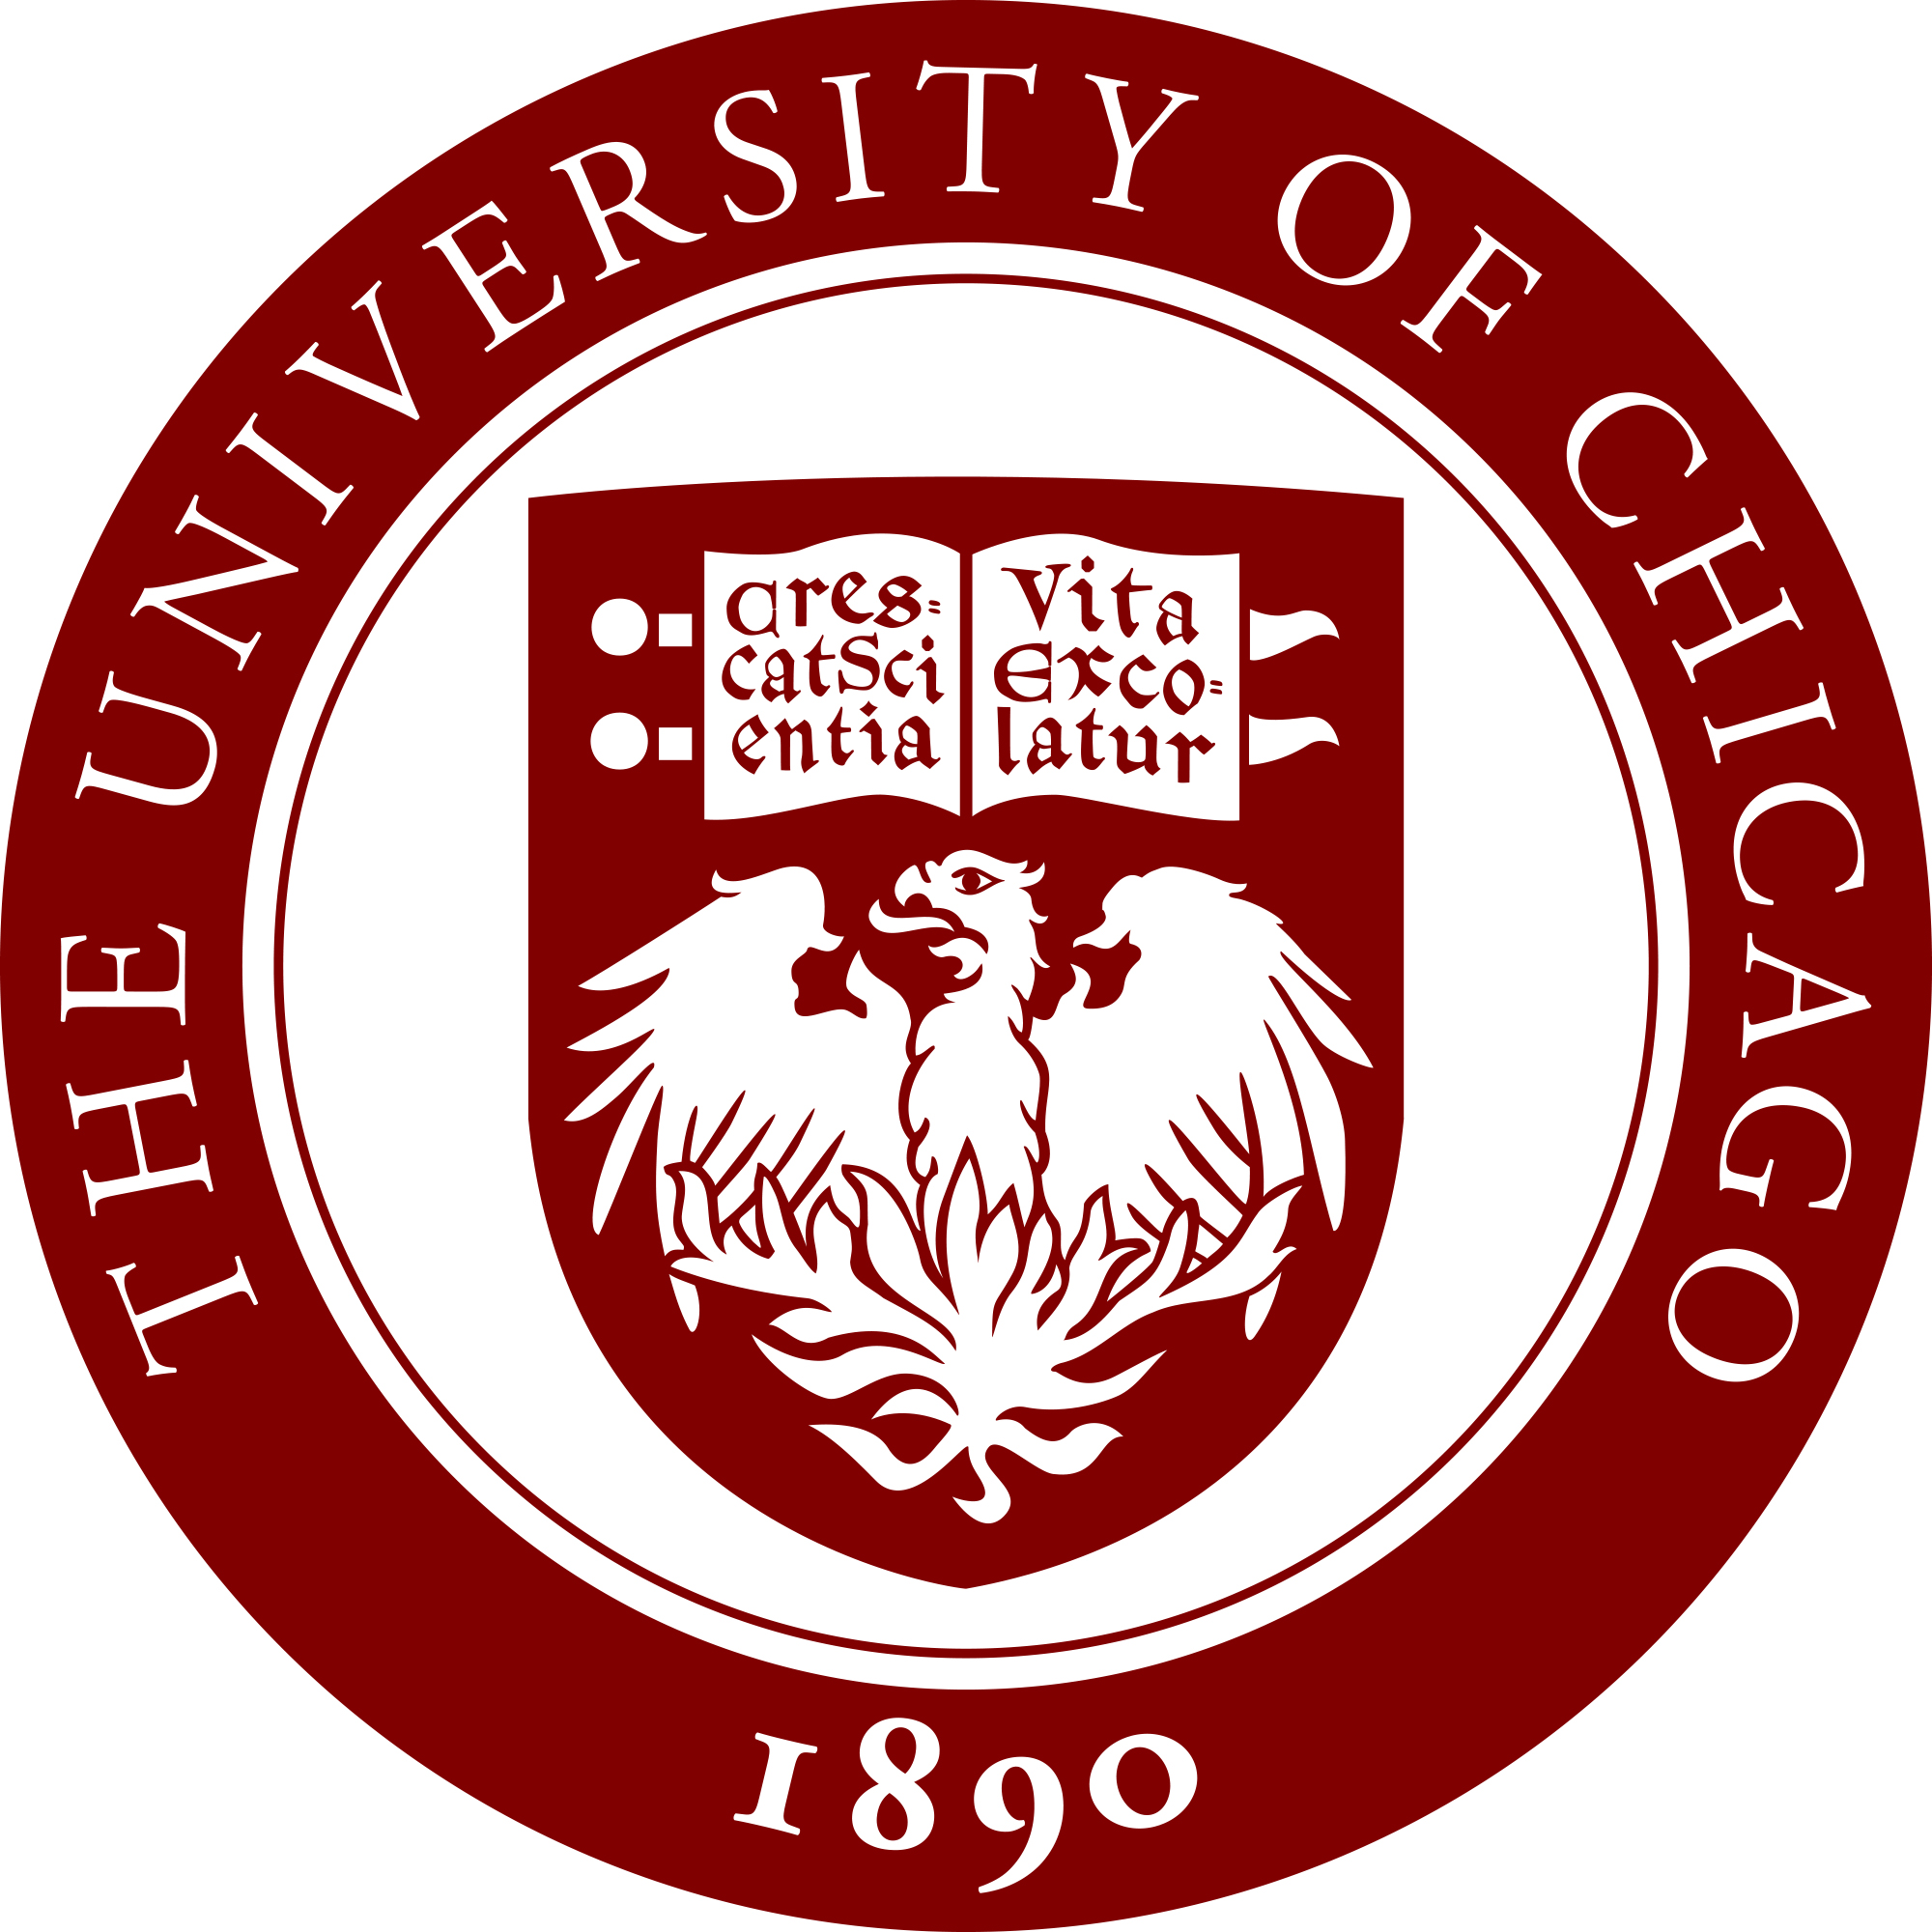 Image result for university of chicago school logo